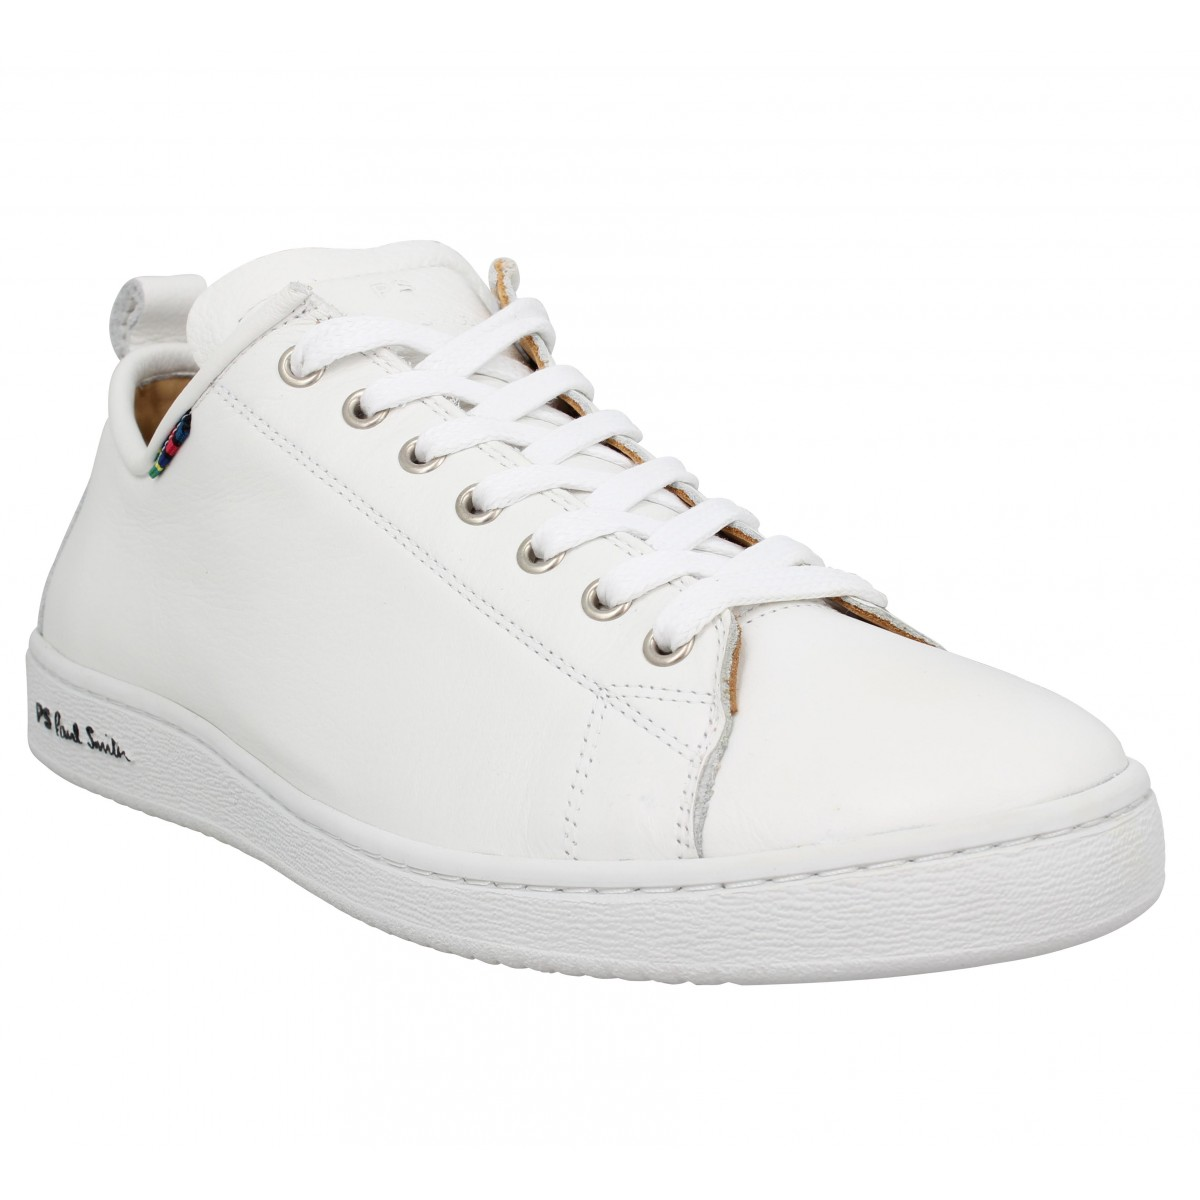 Baskets PAUL SMITH Miyata cuir Homme White